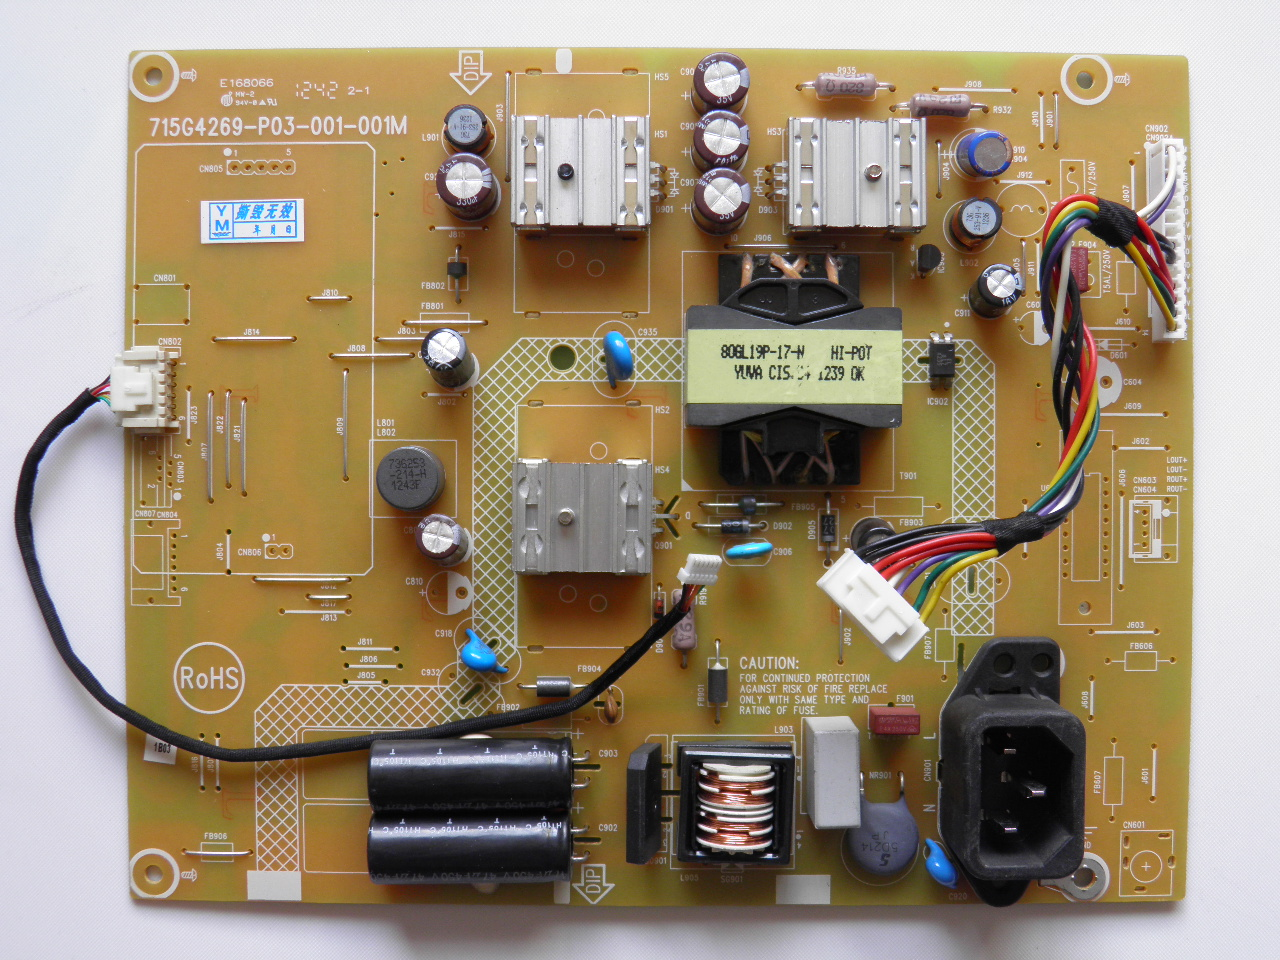 Haier HT-20198B LCD Power board LED 6-pin 715G4269-P01-000-001M